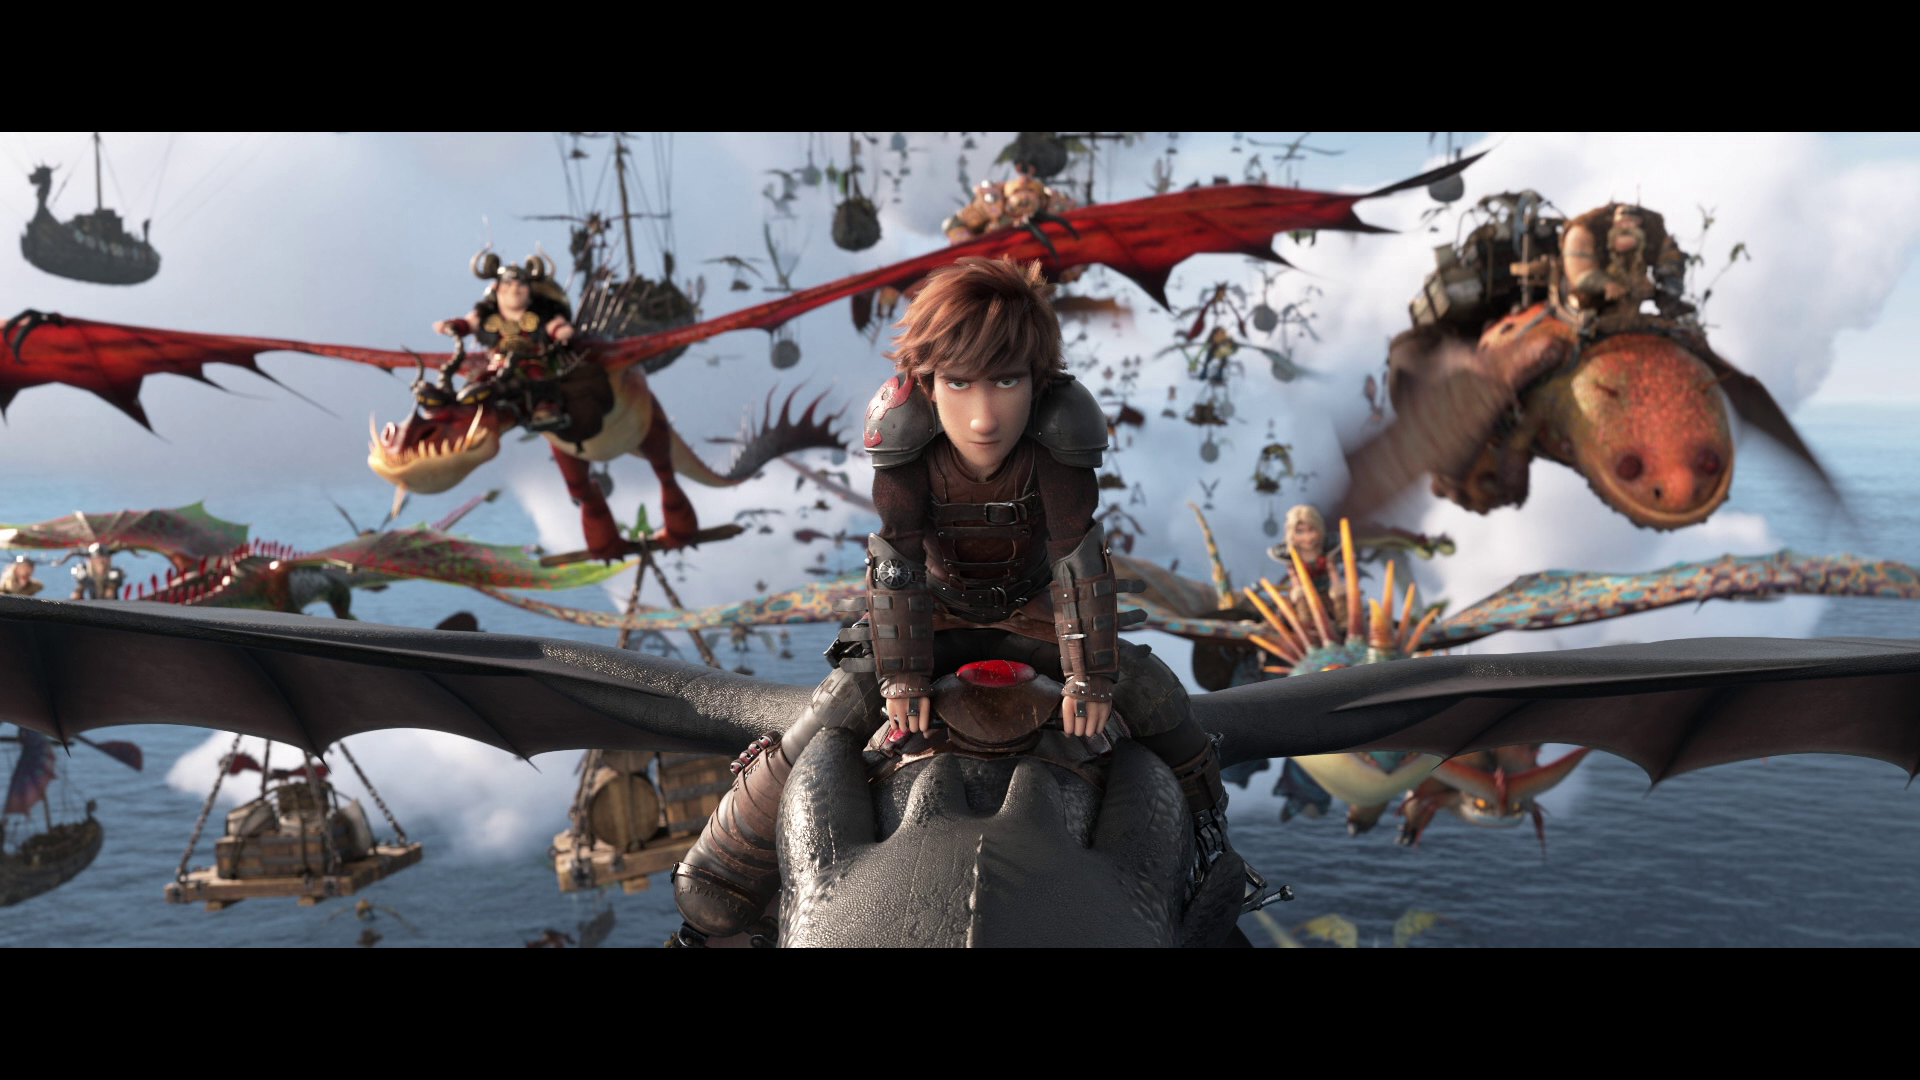 How To Train Your Dragon The Hidden World Closes Trilogy In Epic Fashion 4k Blu Ray Review By Austin Vashaw Cinapse